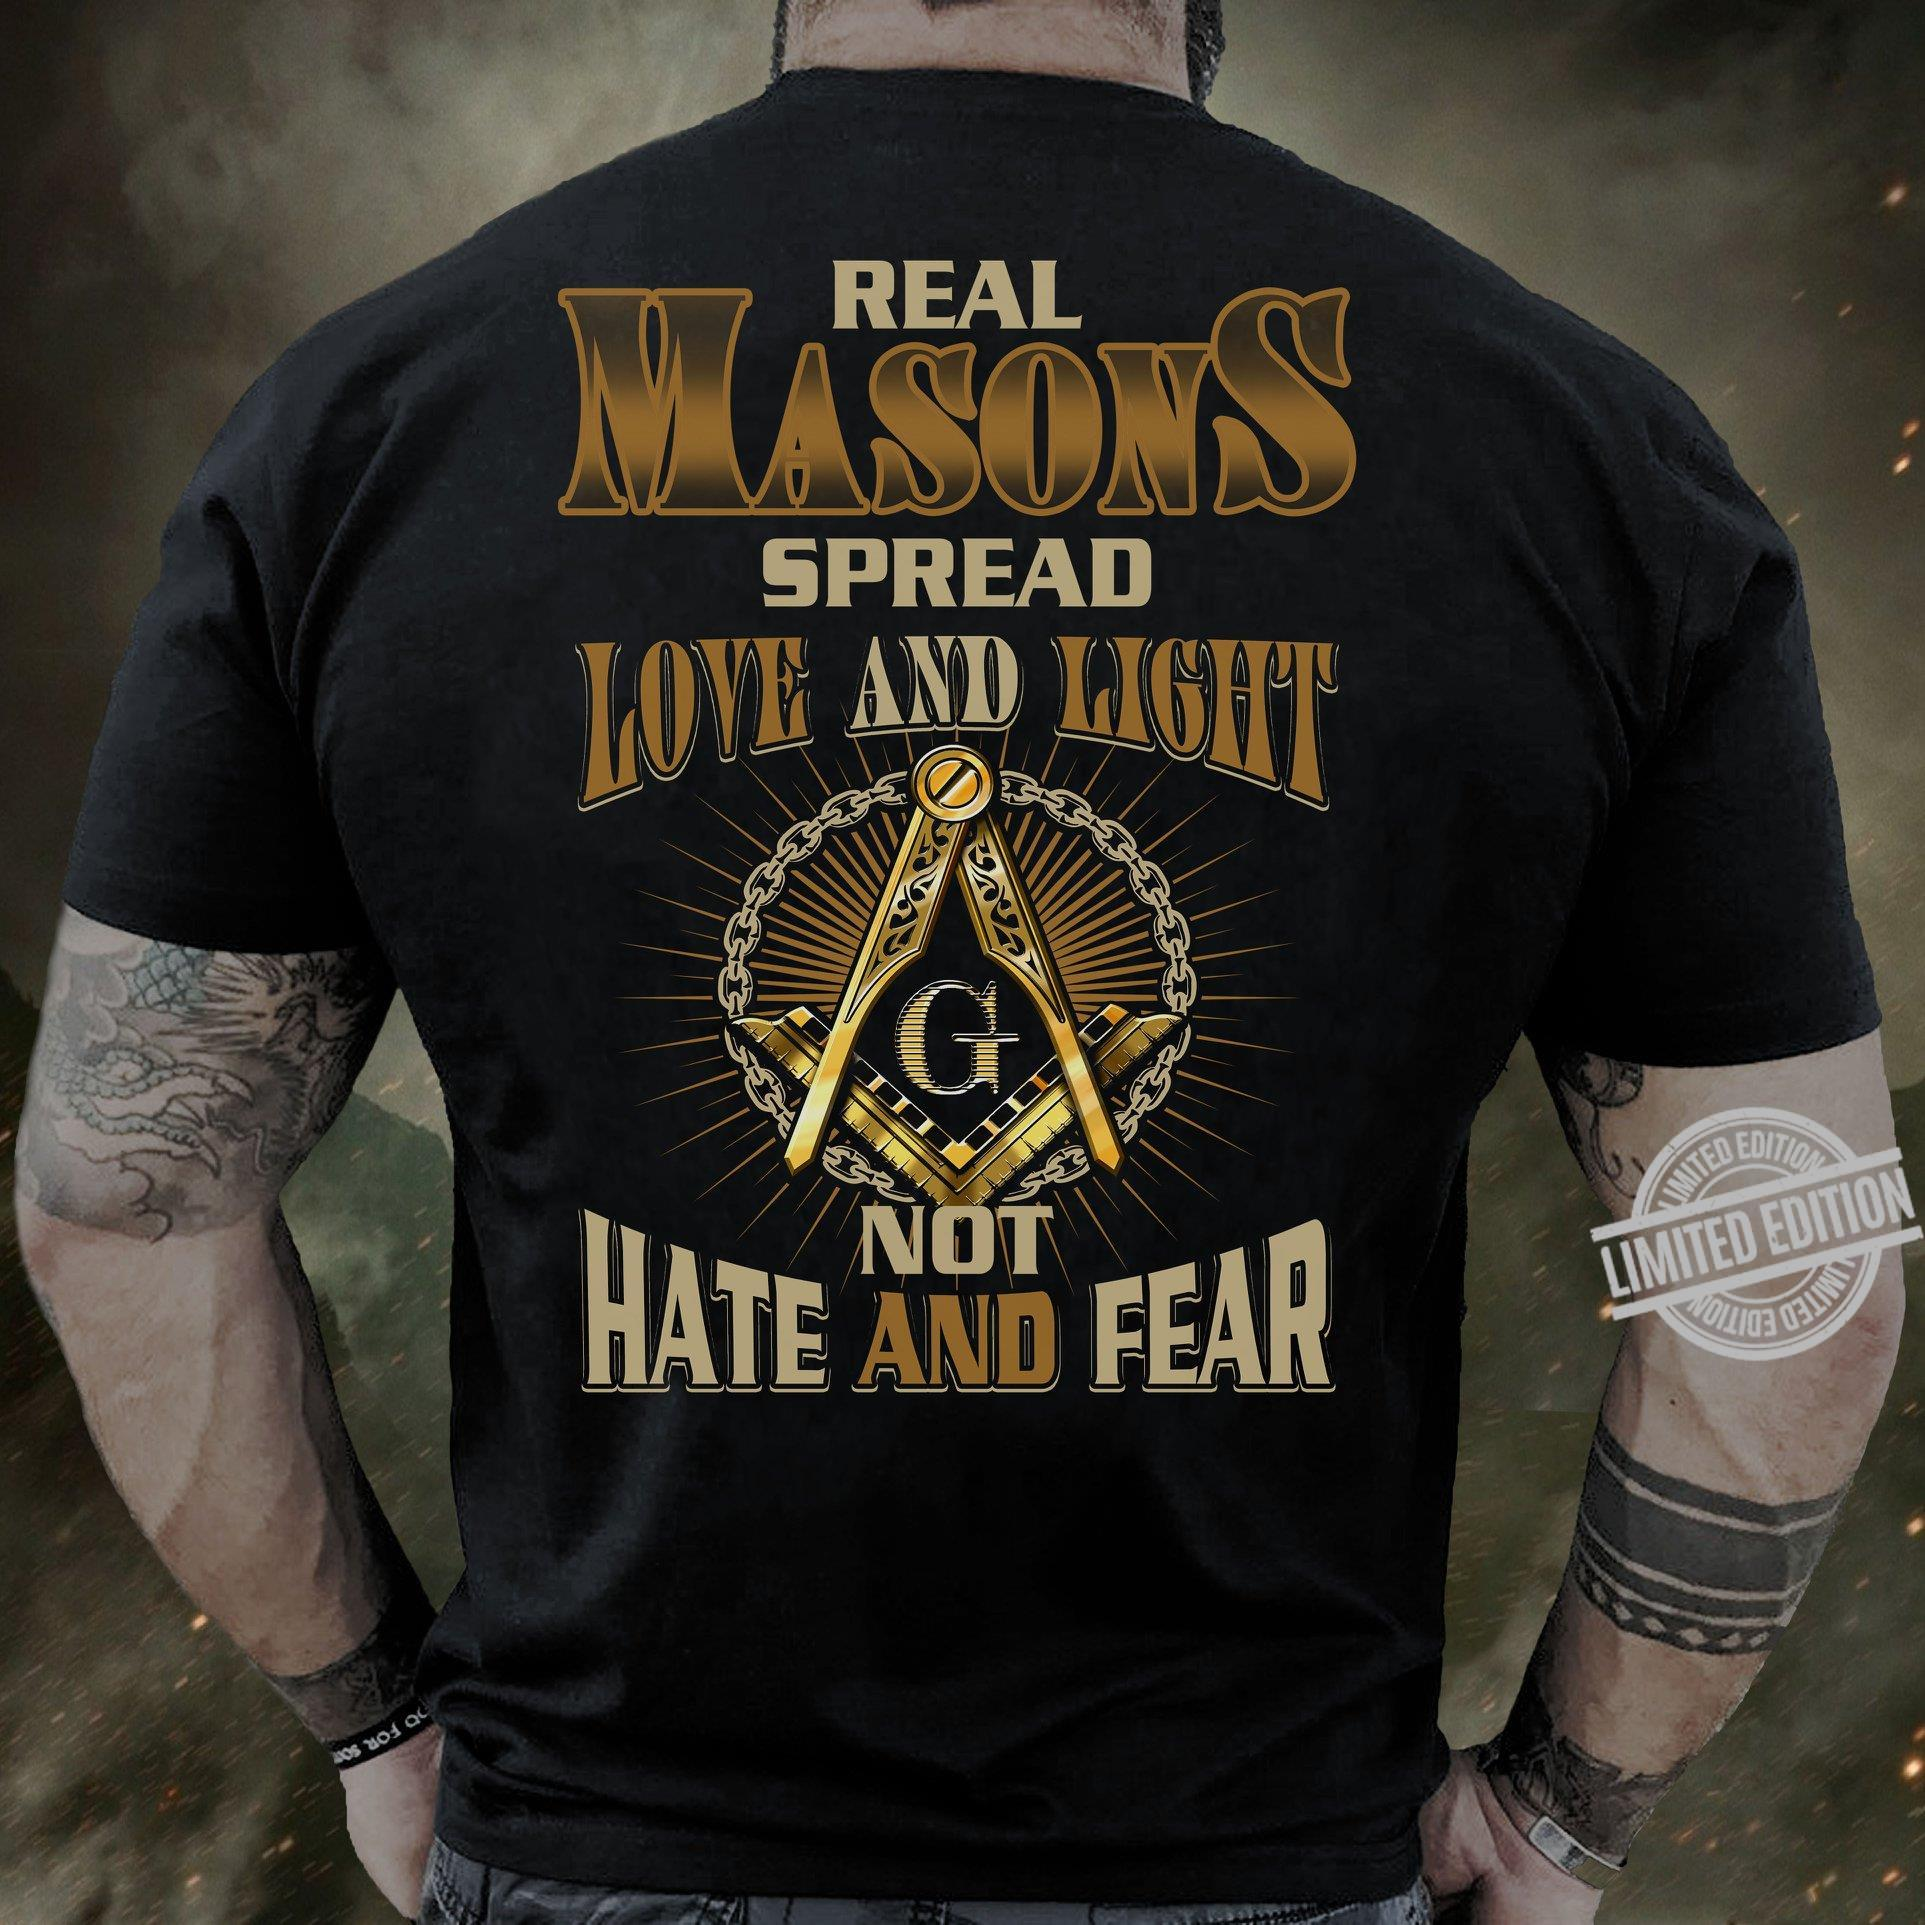 Real Masons Spread Love And Light Not Hate And Fear Shirt